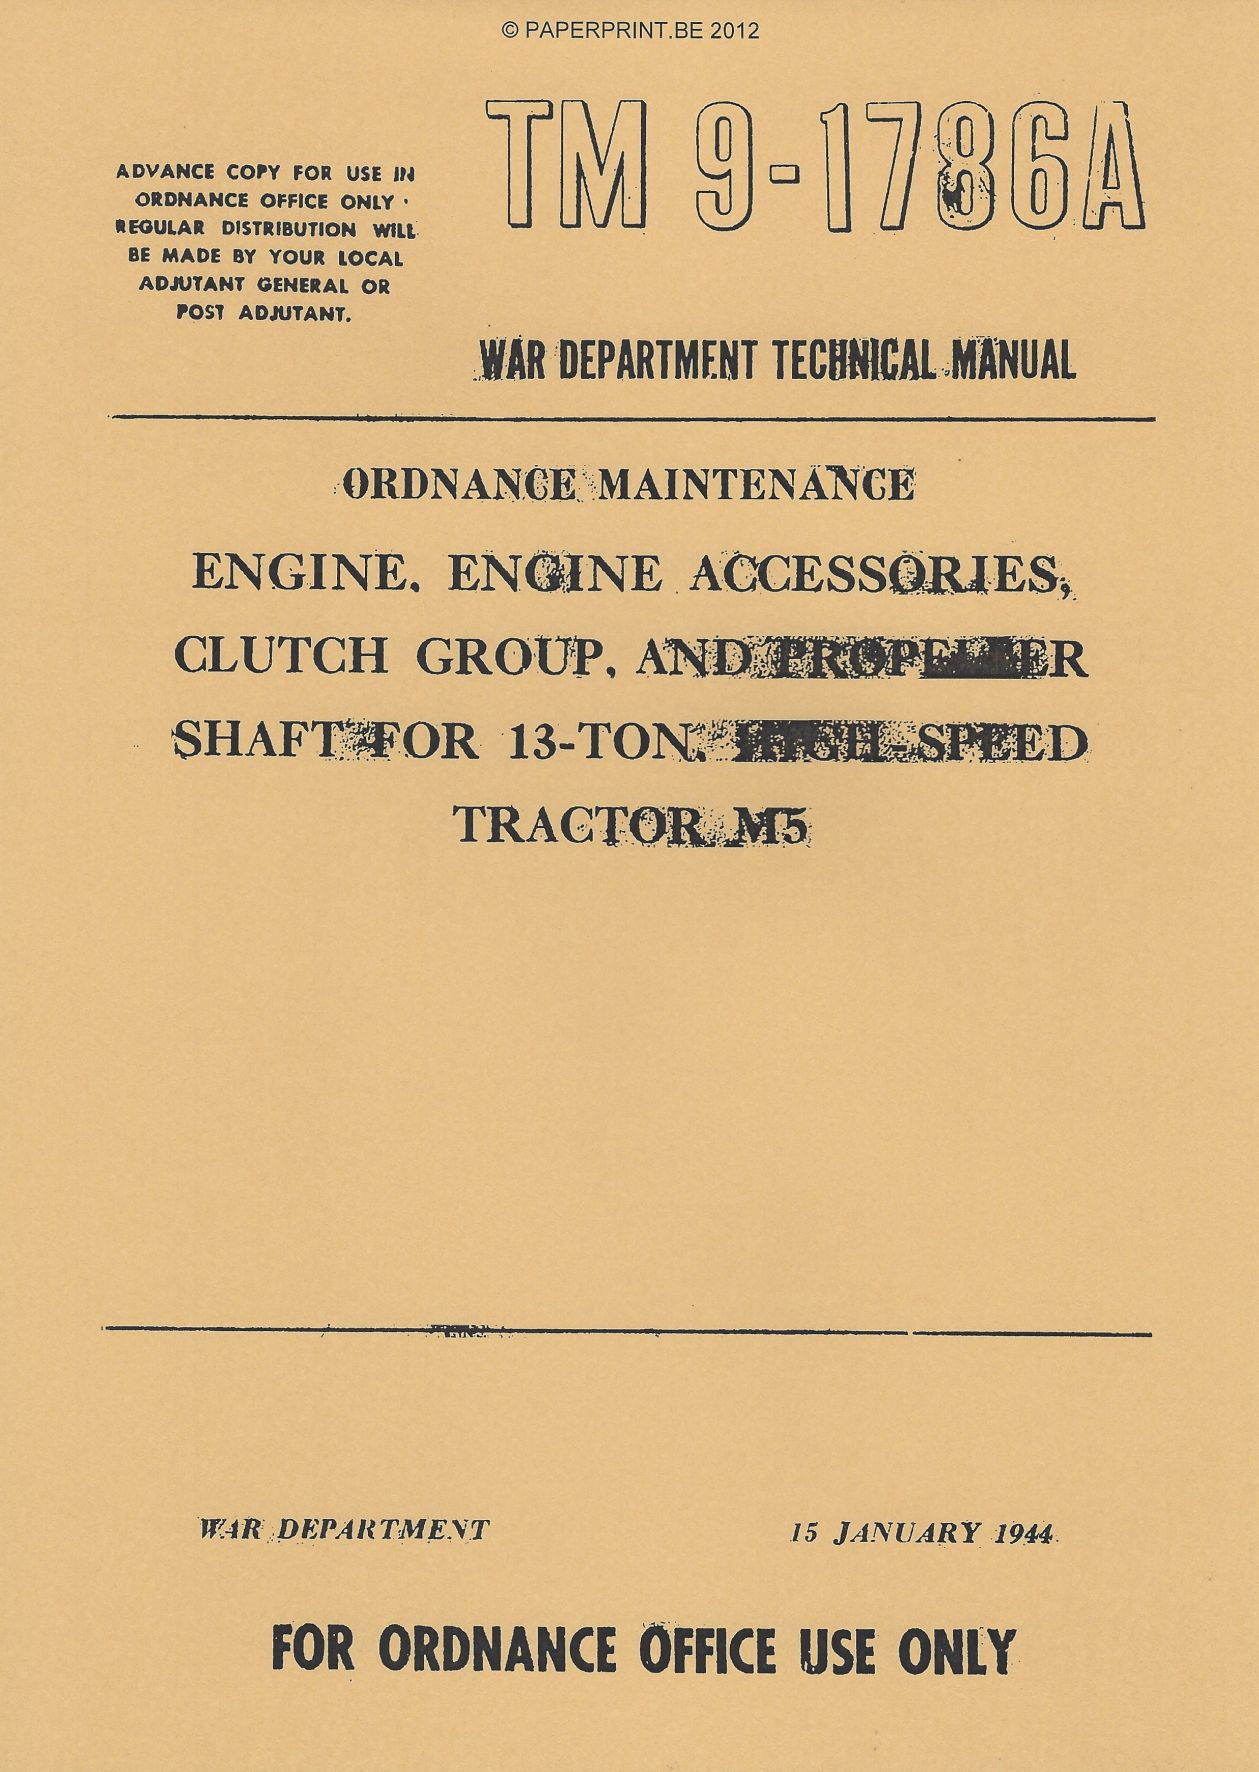 TM 9-1786A US ENGINE, ENGINE ACCESSOIRIES, CLUTCH GROUP, AND PROPELLER SHAFT FOR 13-TON, HIGH-SPEED TRACTOR M5